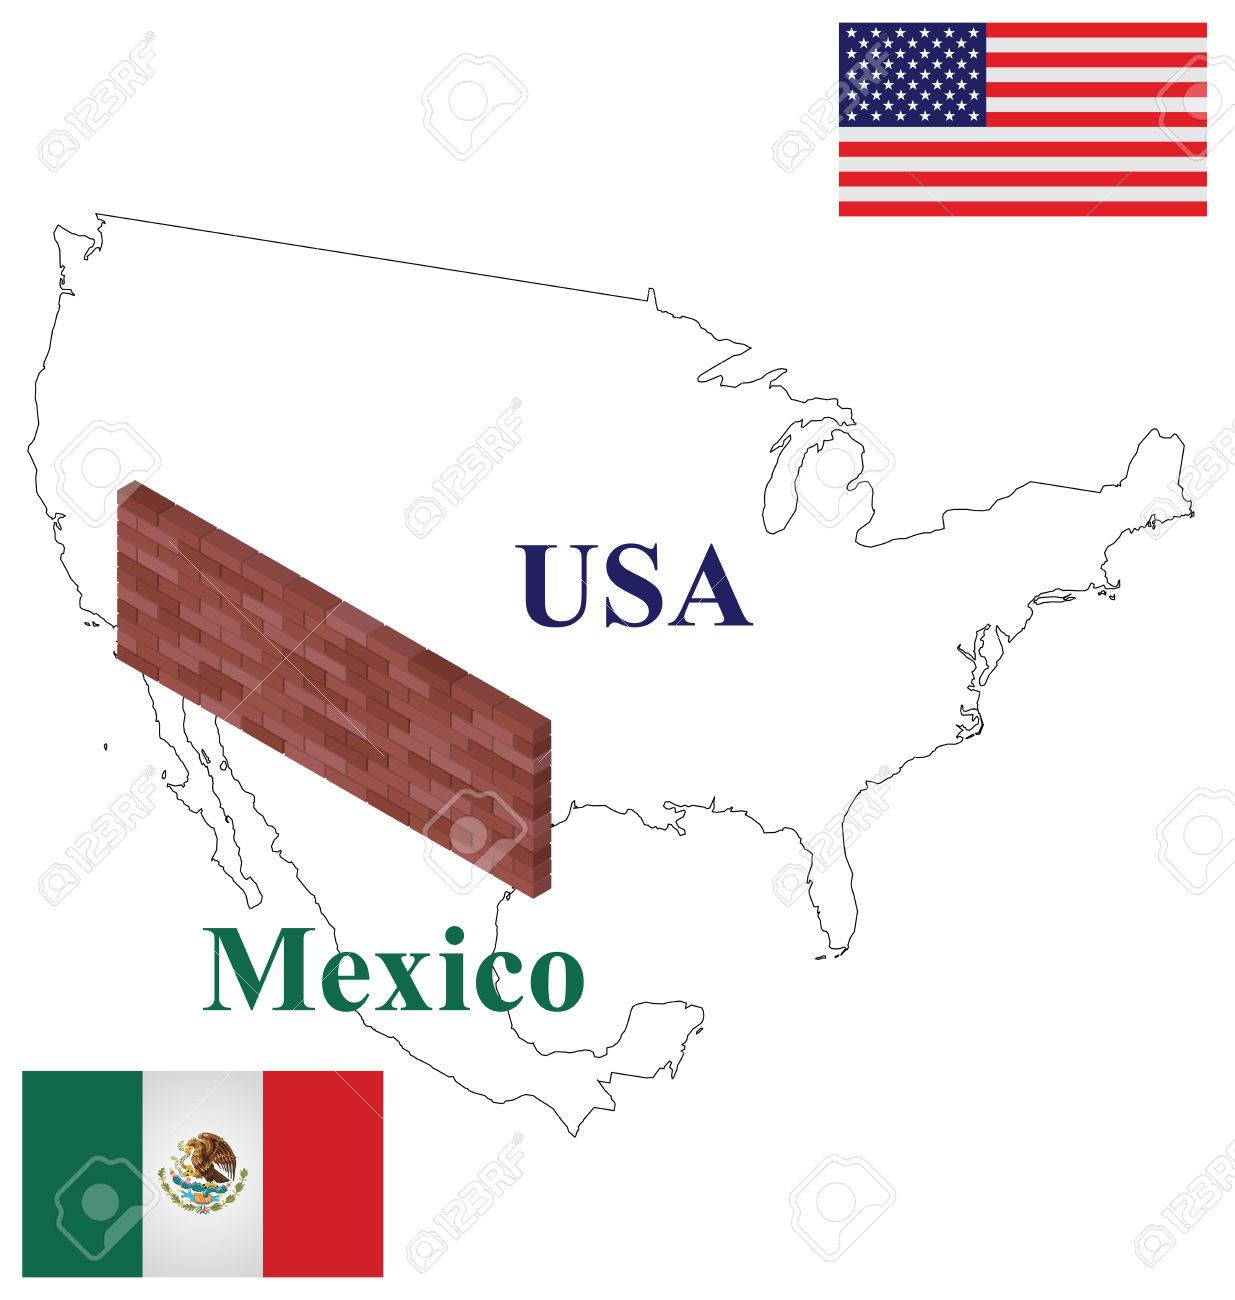 Outline USA Mexico Map With Brick Wall At Border To Stop Illegal ...